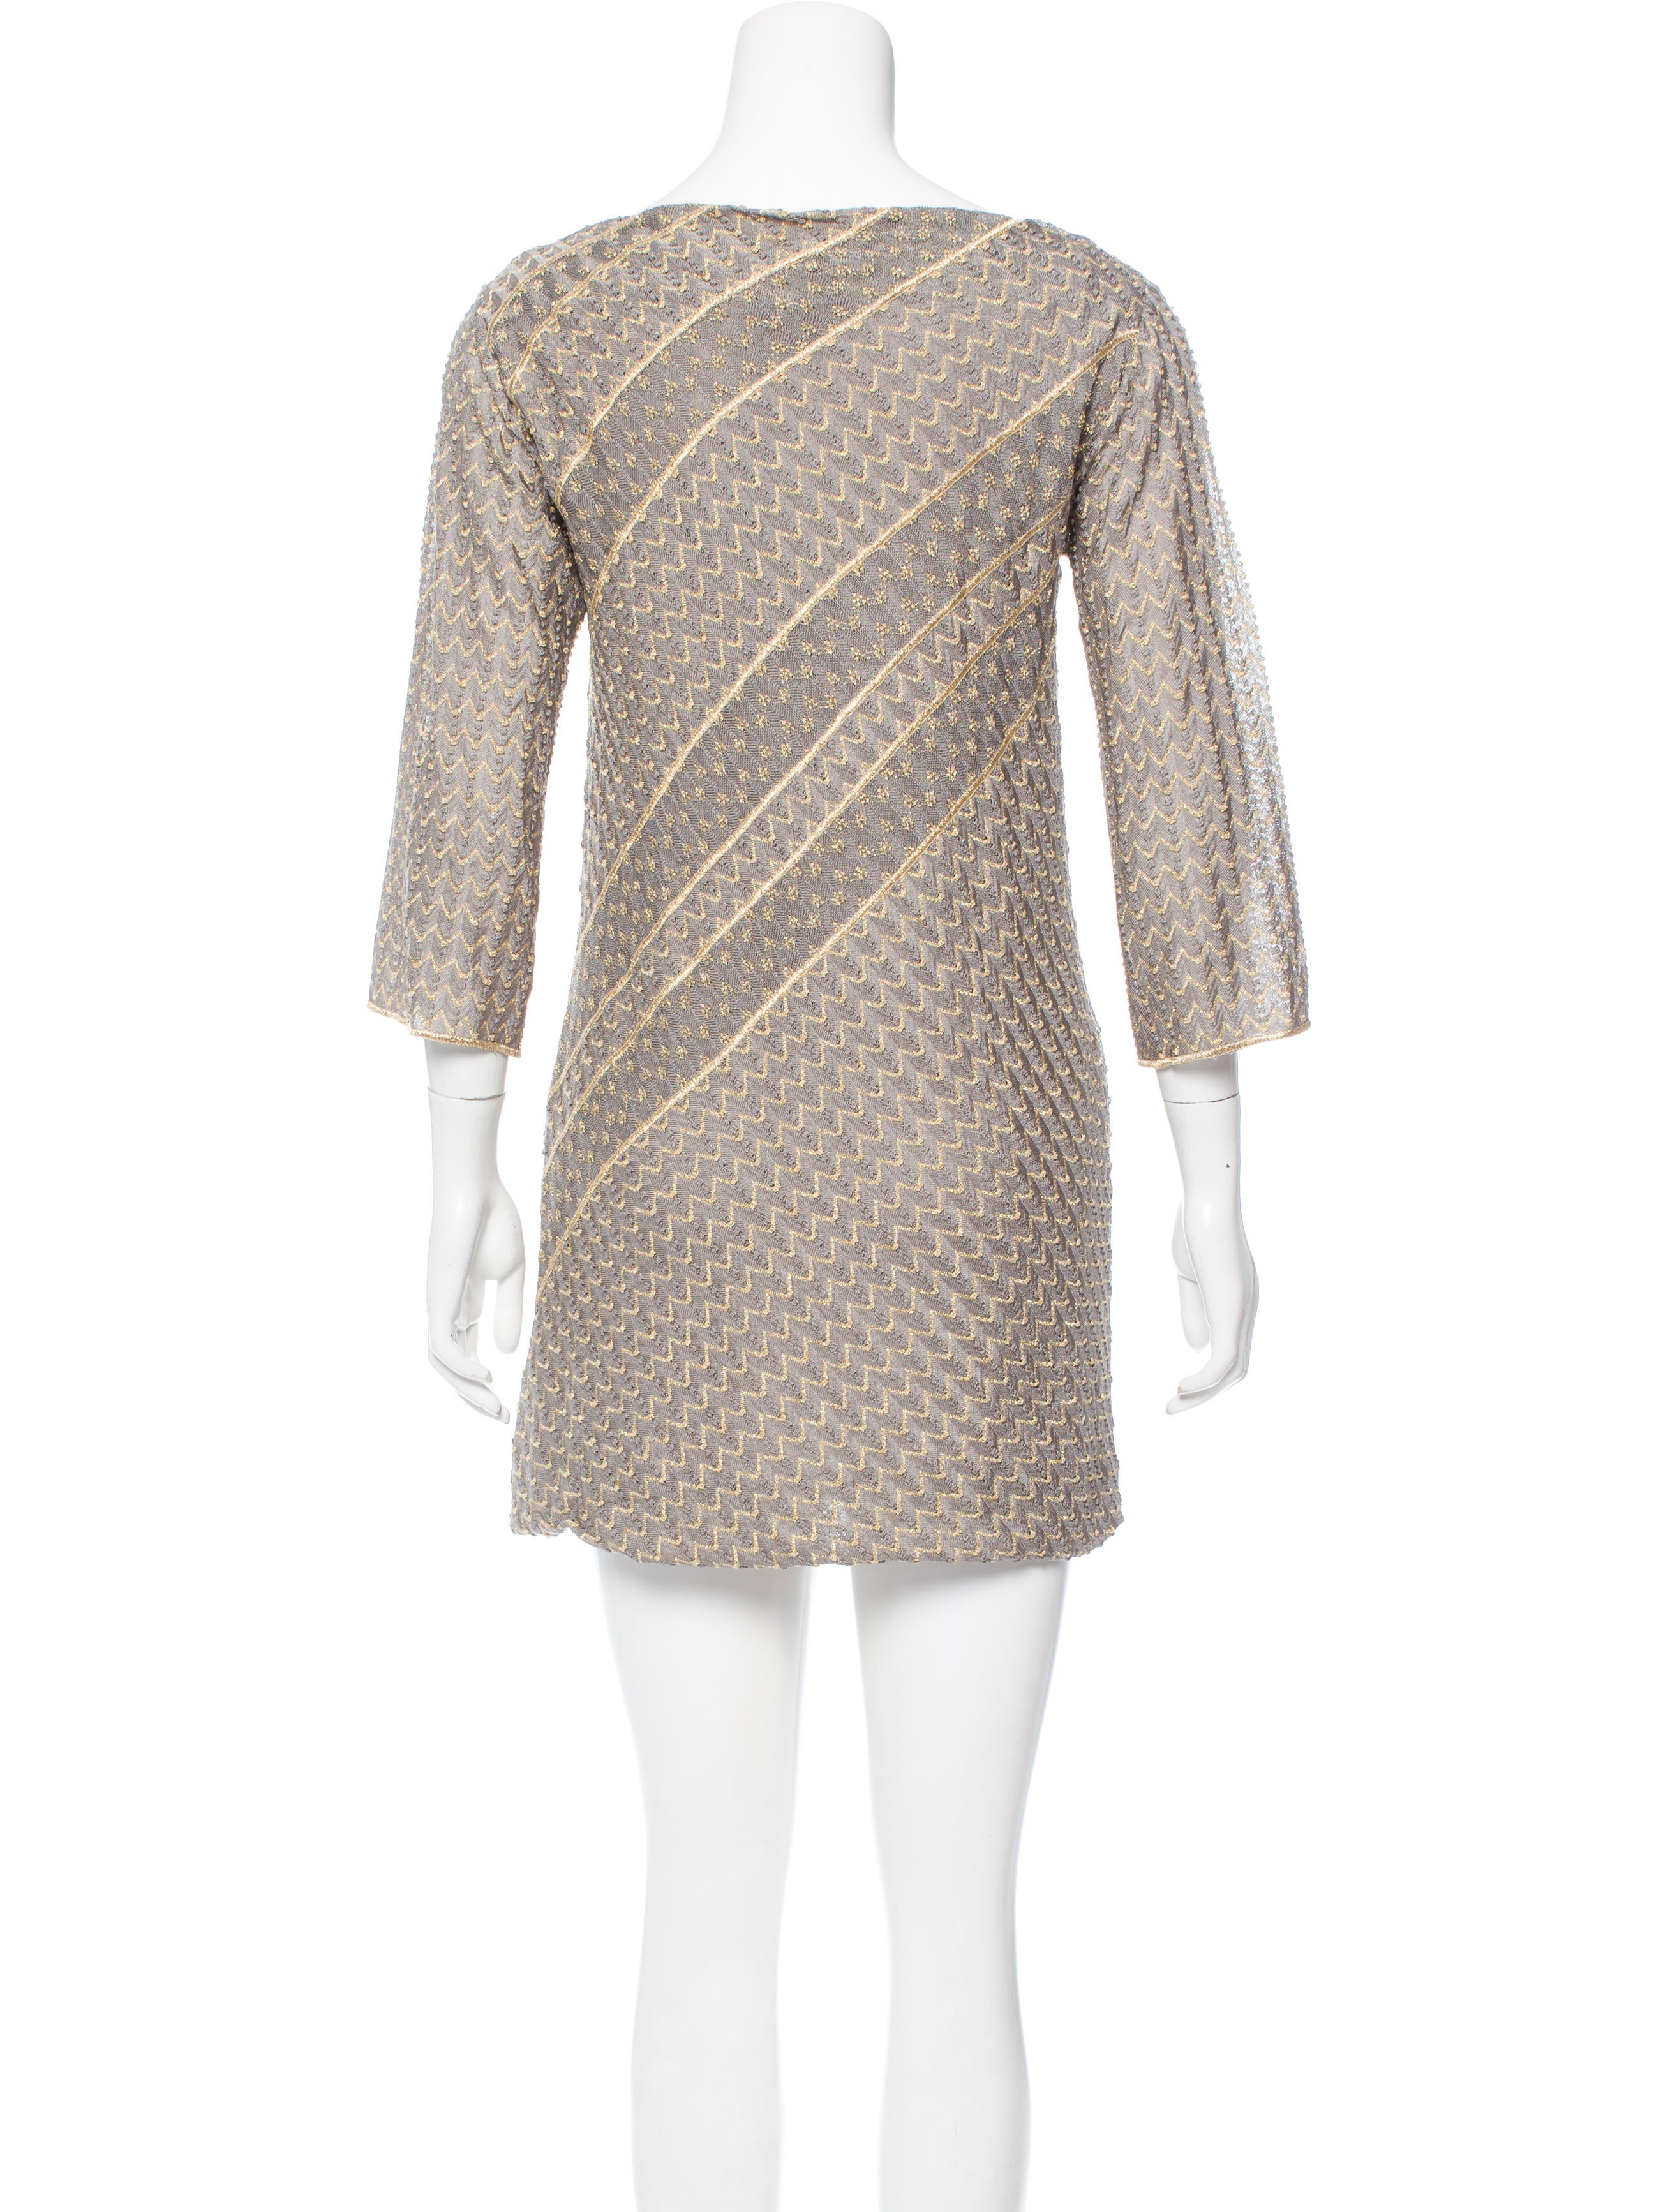 Charabia Long-Sleeve Knit Top Dress w/ Tulle Skirt, Size Details EXCLUSIVELY AT NEIMAN MARCUS Charabia dress with knit top and glittered polka-dot tulle skirt. Crew neckline with ruffle trim. Long sleeves.